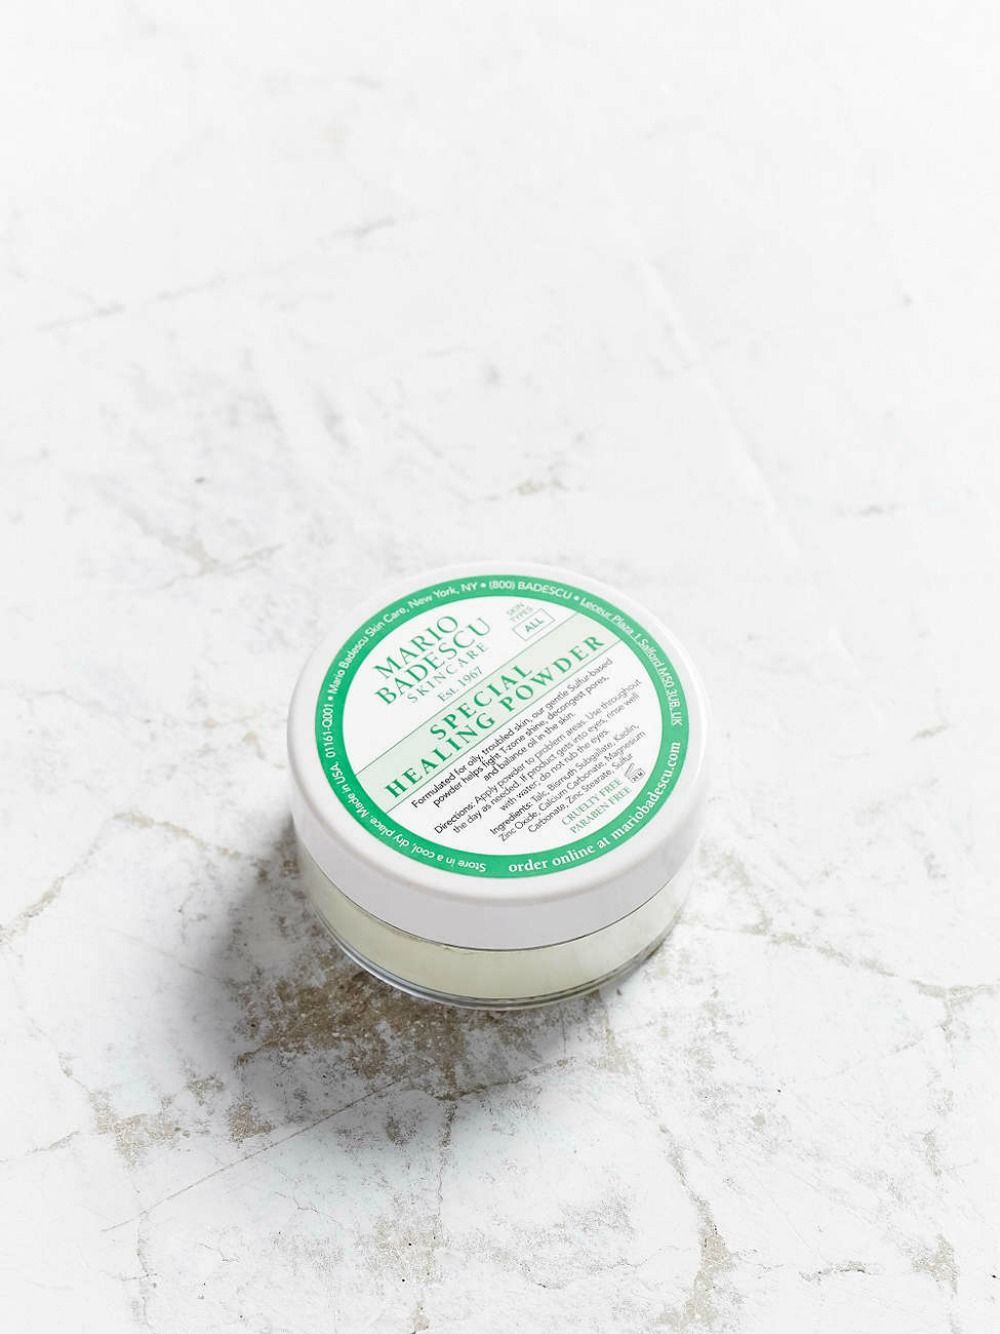 Mario Badescu Special Healing Powder - 9 Must-Have Skincare Products For Oily Skin